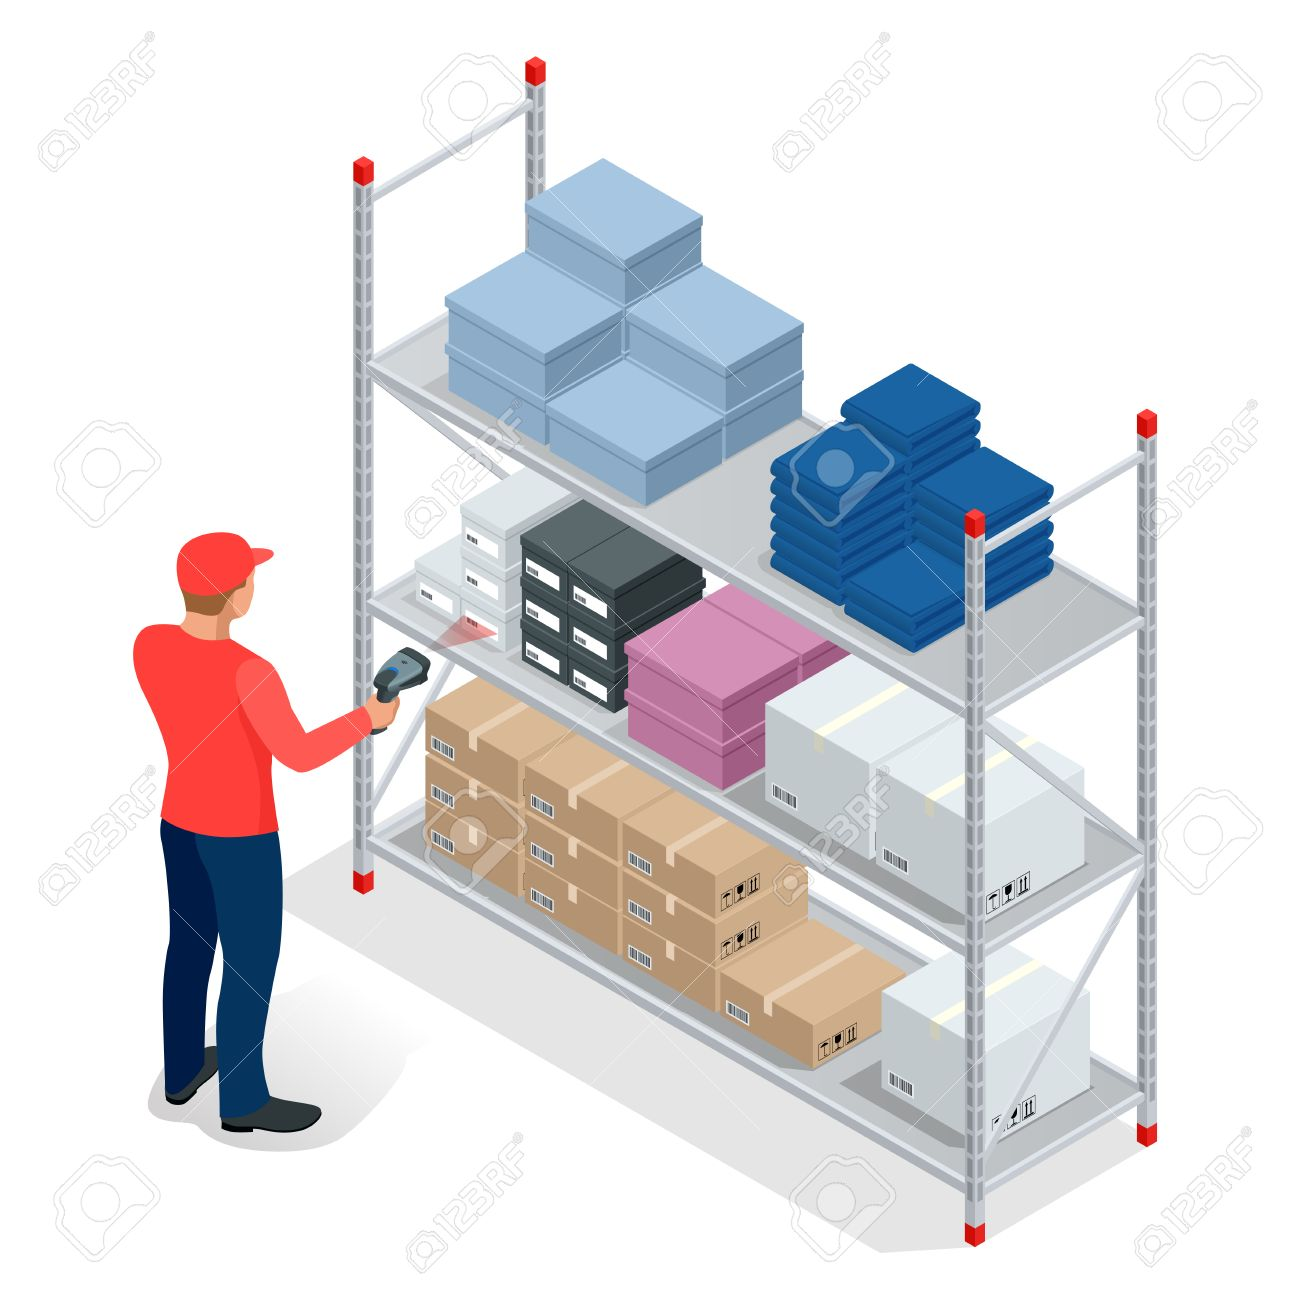 Warehouse manager or warehouse worker with bar code scanner checking goods on storage racks. Stock taking job. Flat 3d vector isometric illustration - 58367201